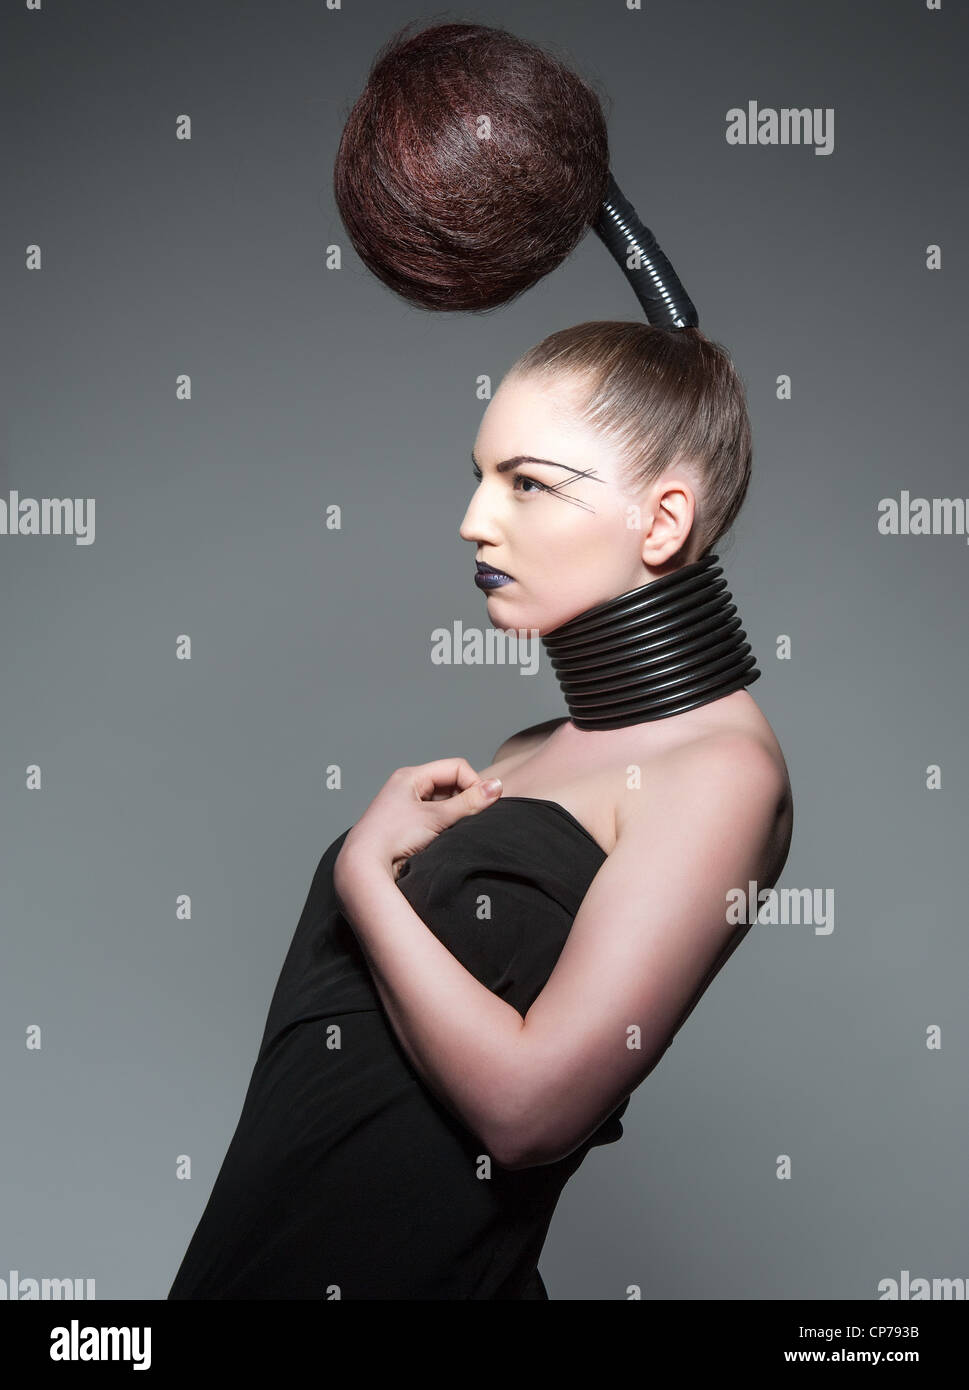 a crazy avant garde hairstyle Stock Photo: 48103983 - Alamy